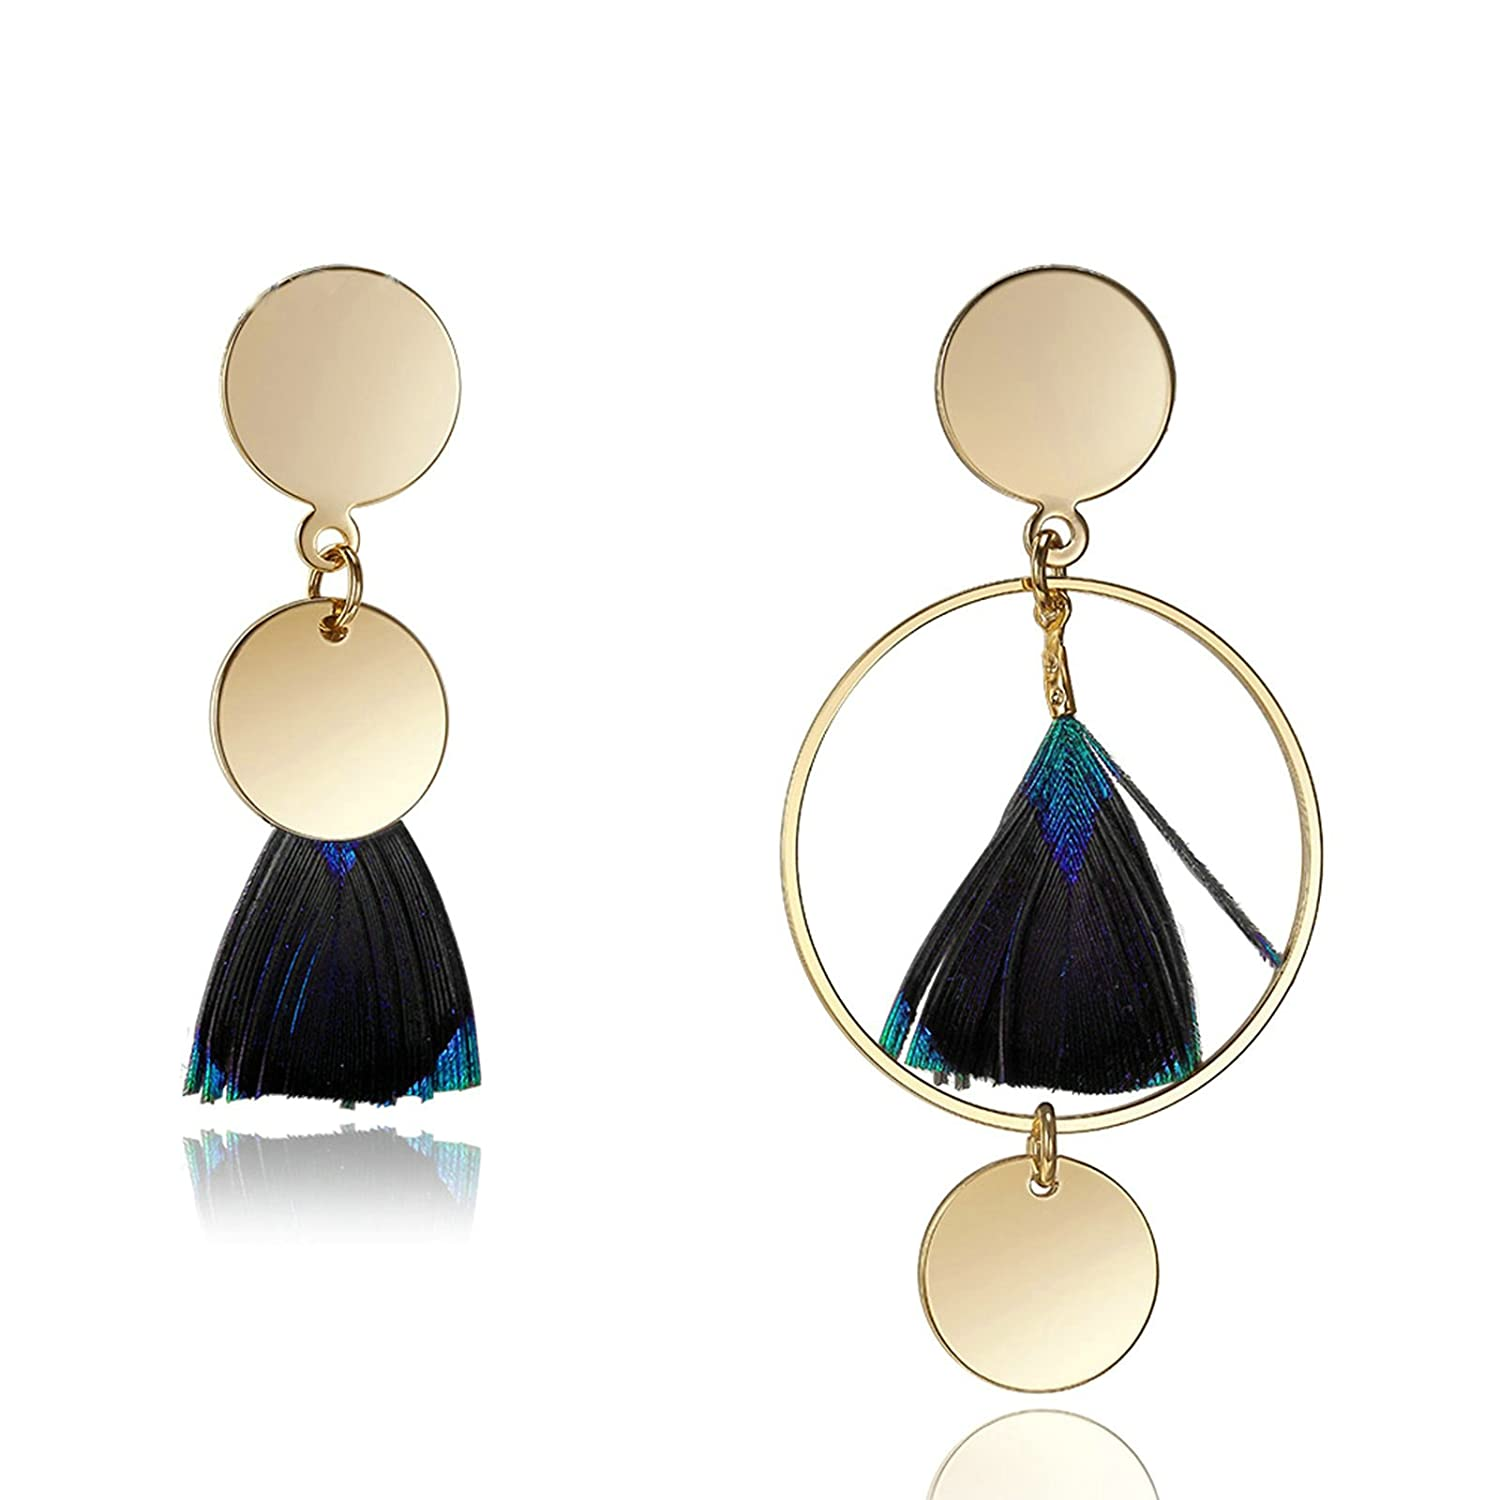 Adisaer 18k Gold Plated Dangle Earrings Daily Wear for Girls Gold Round Dangle Feathers